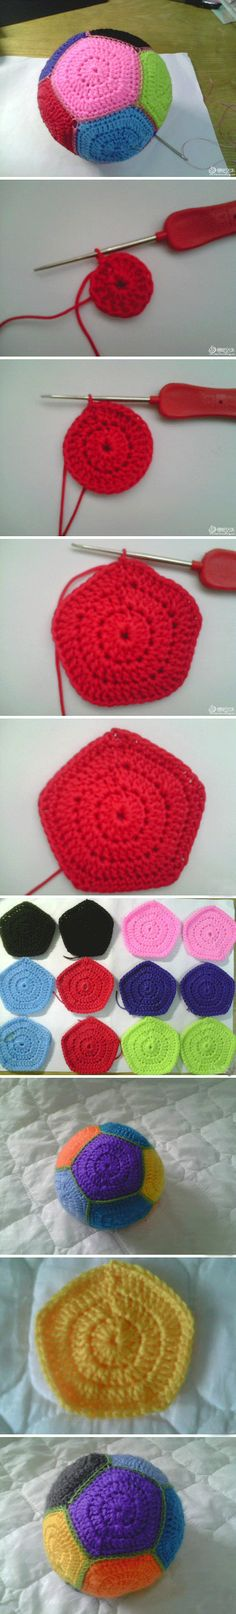 Crochet Granny Ball - Tutorial ༺✿ƬⱤღ  https://www.pinterest.com/teretegui/✿༻